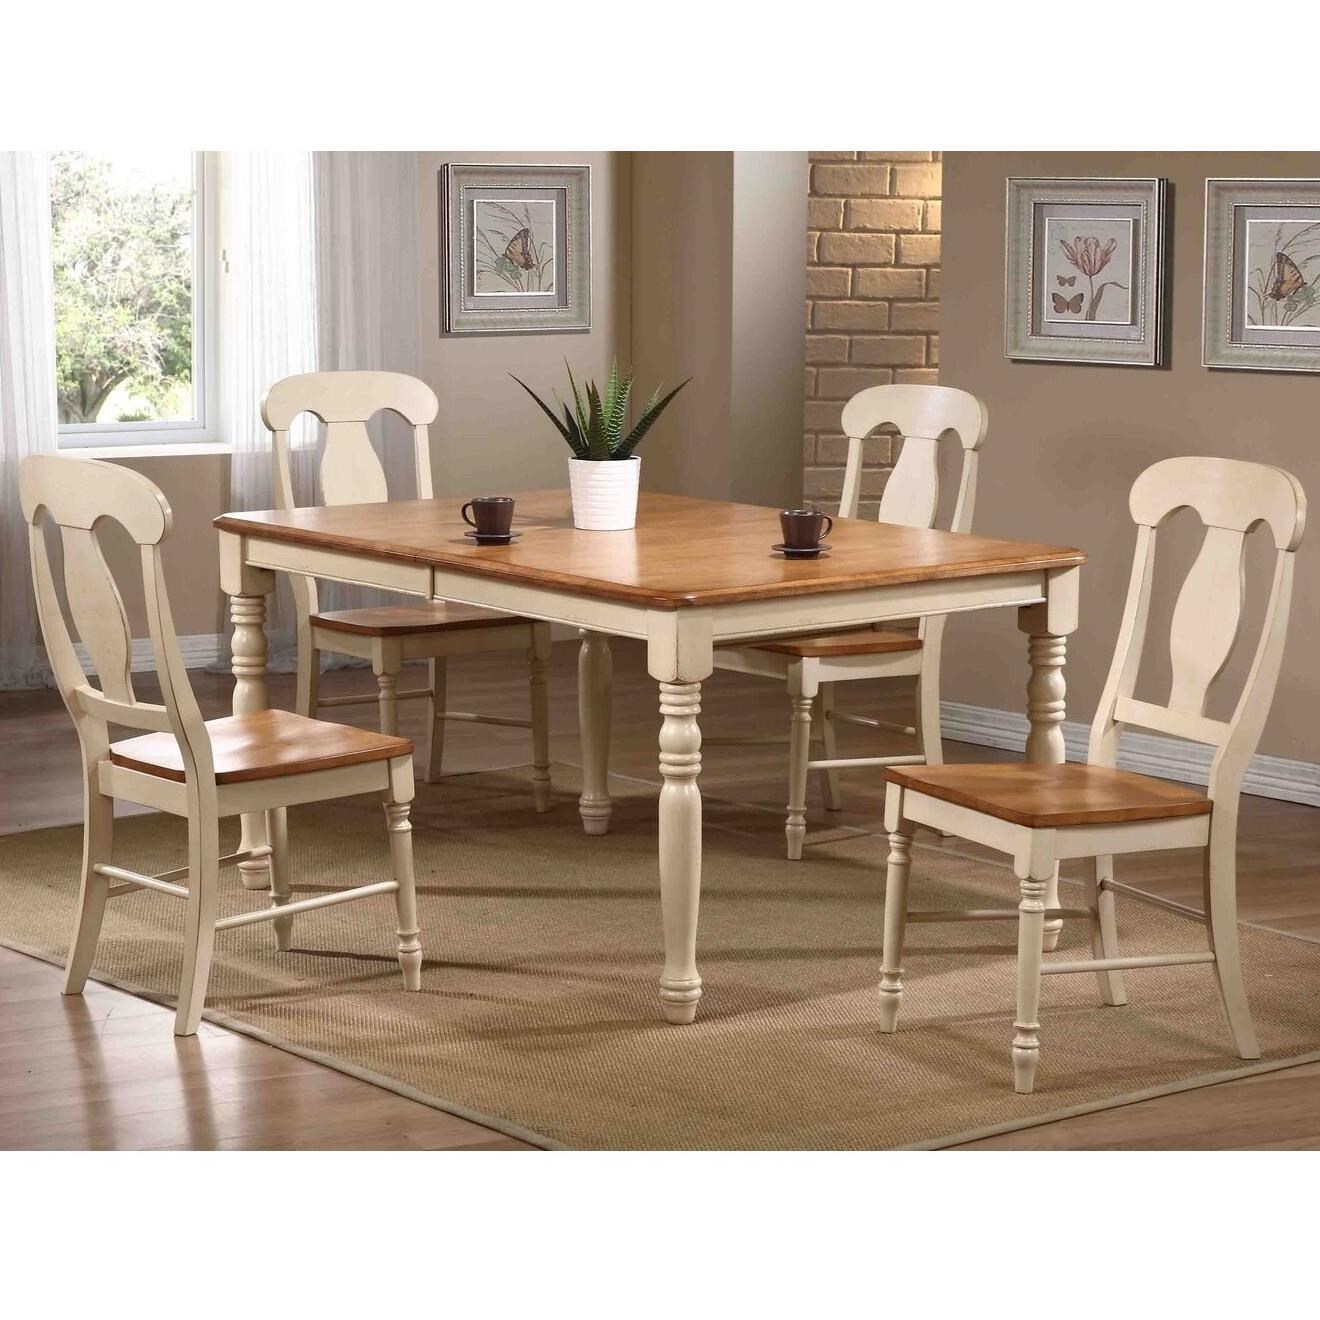 Caramel Biscotti 5 Piece Dining Set with Splat Back Chairs by Iconic Furniture Co. at Dinette Depot